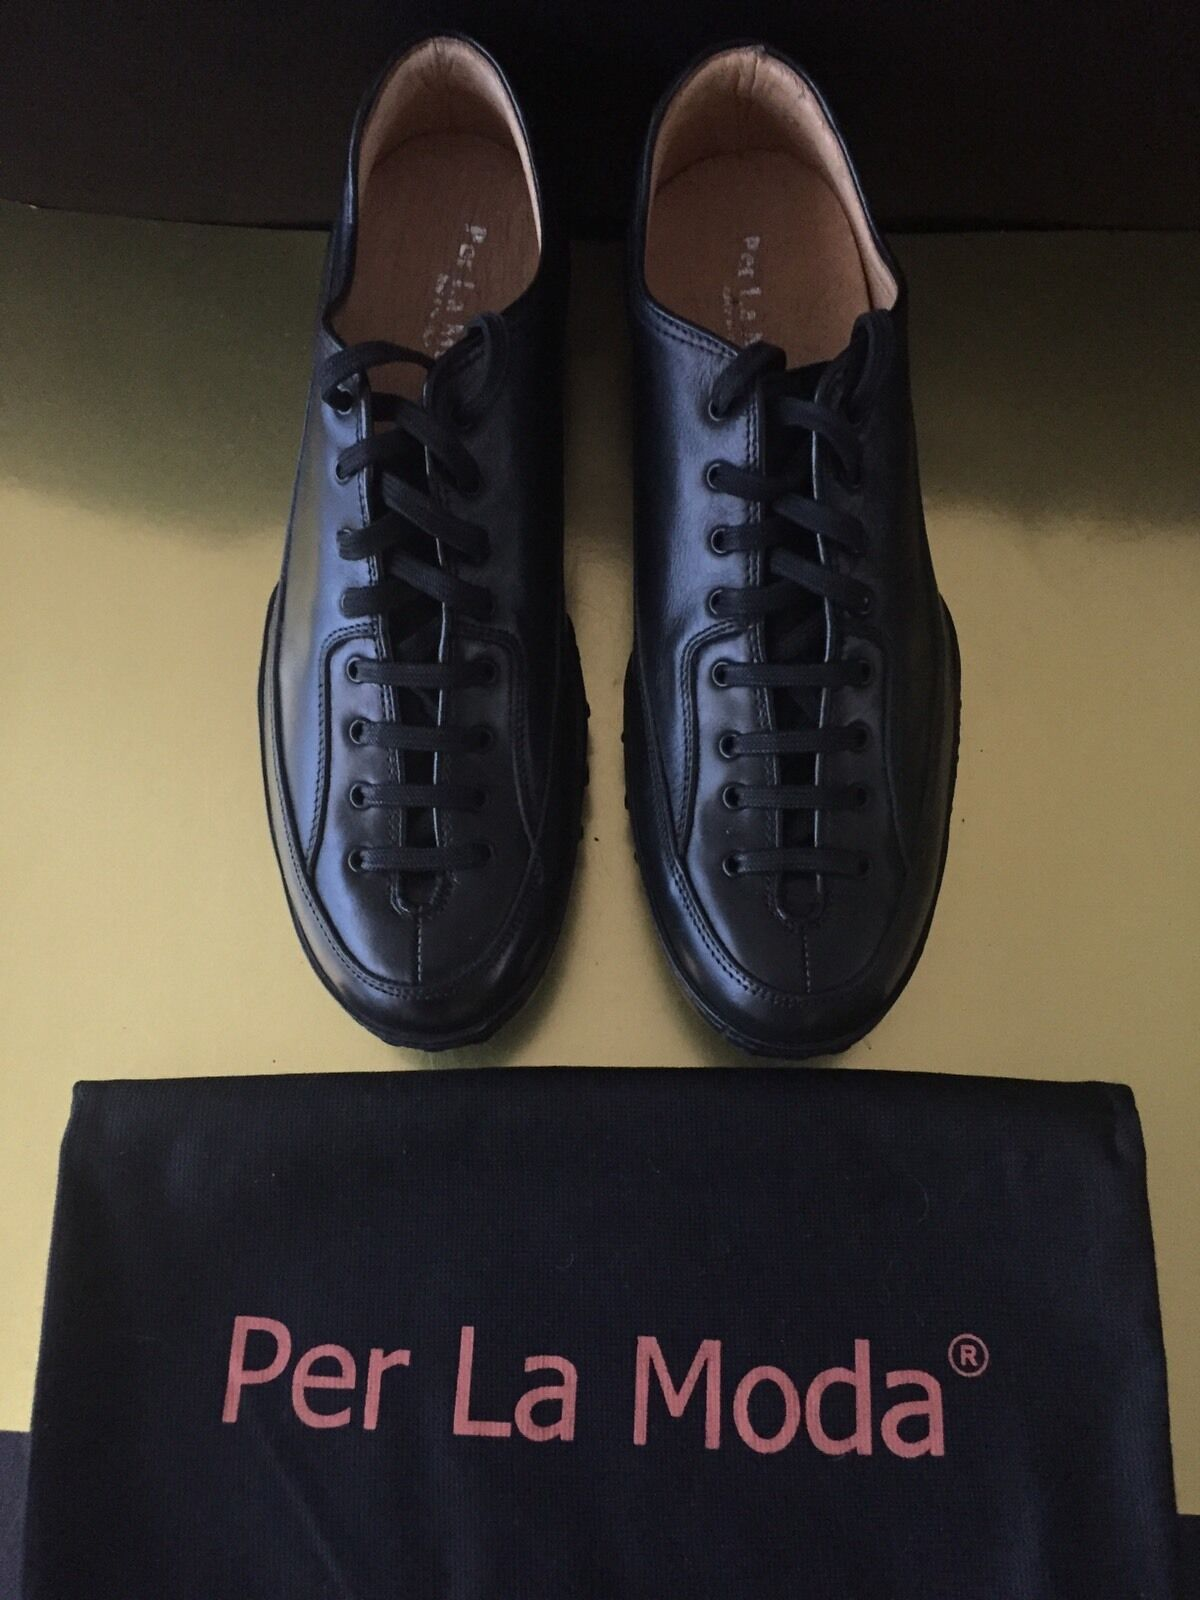 Gentlemen/Ladies Per La Moda Black Sneakers NWOT Cheap real Personalization trend